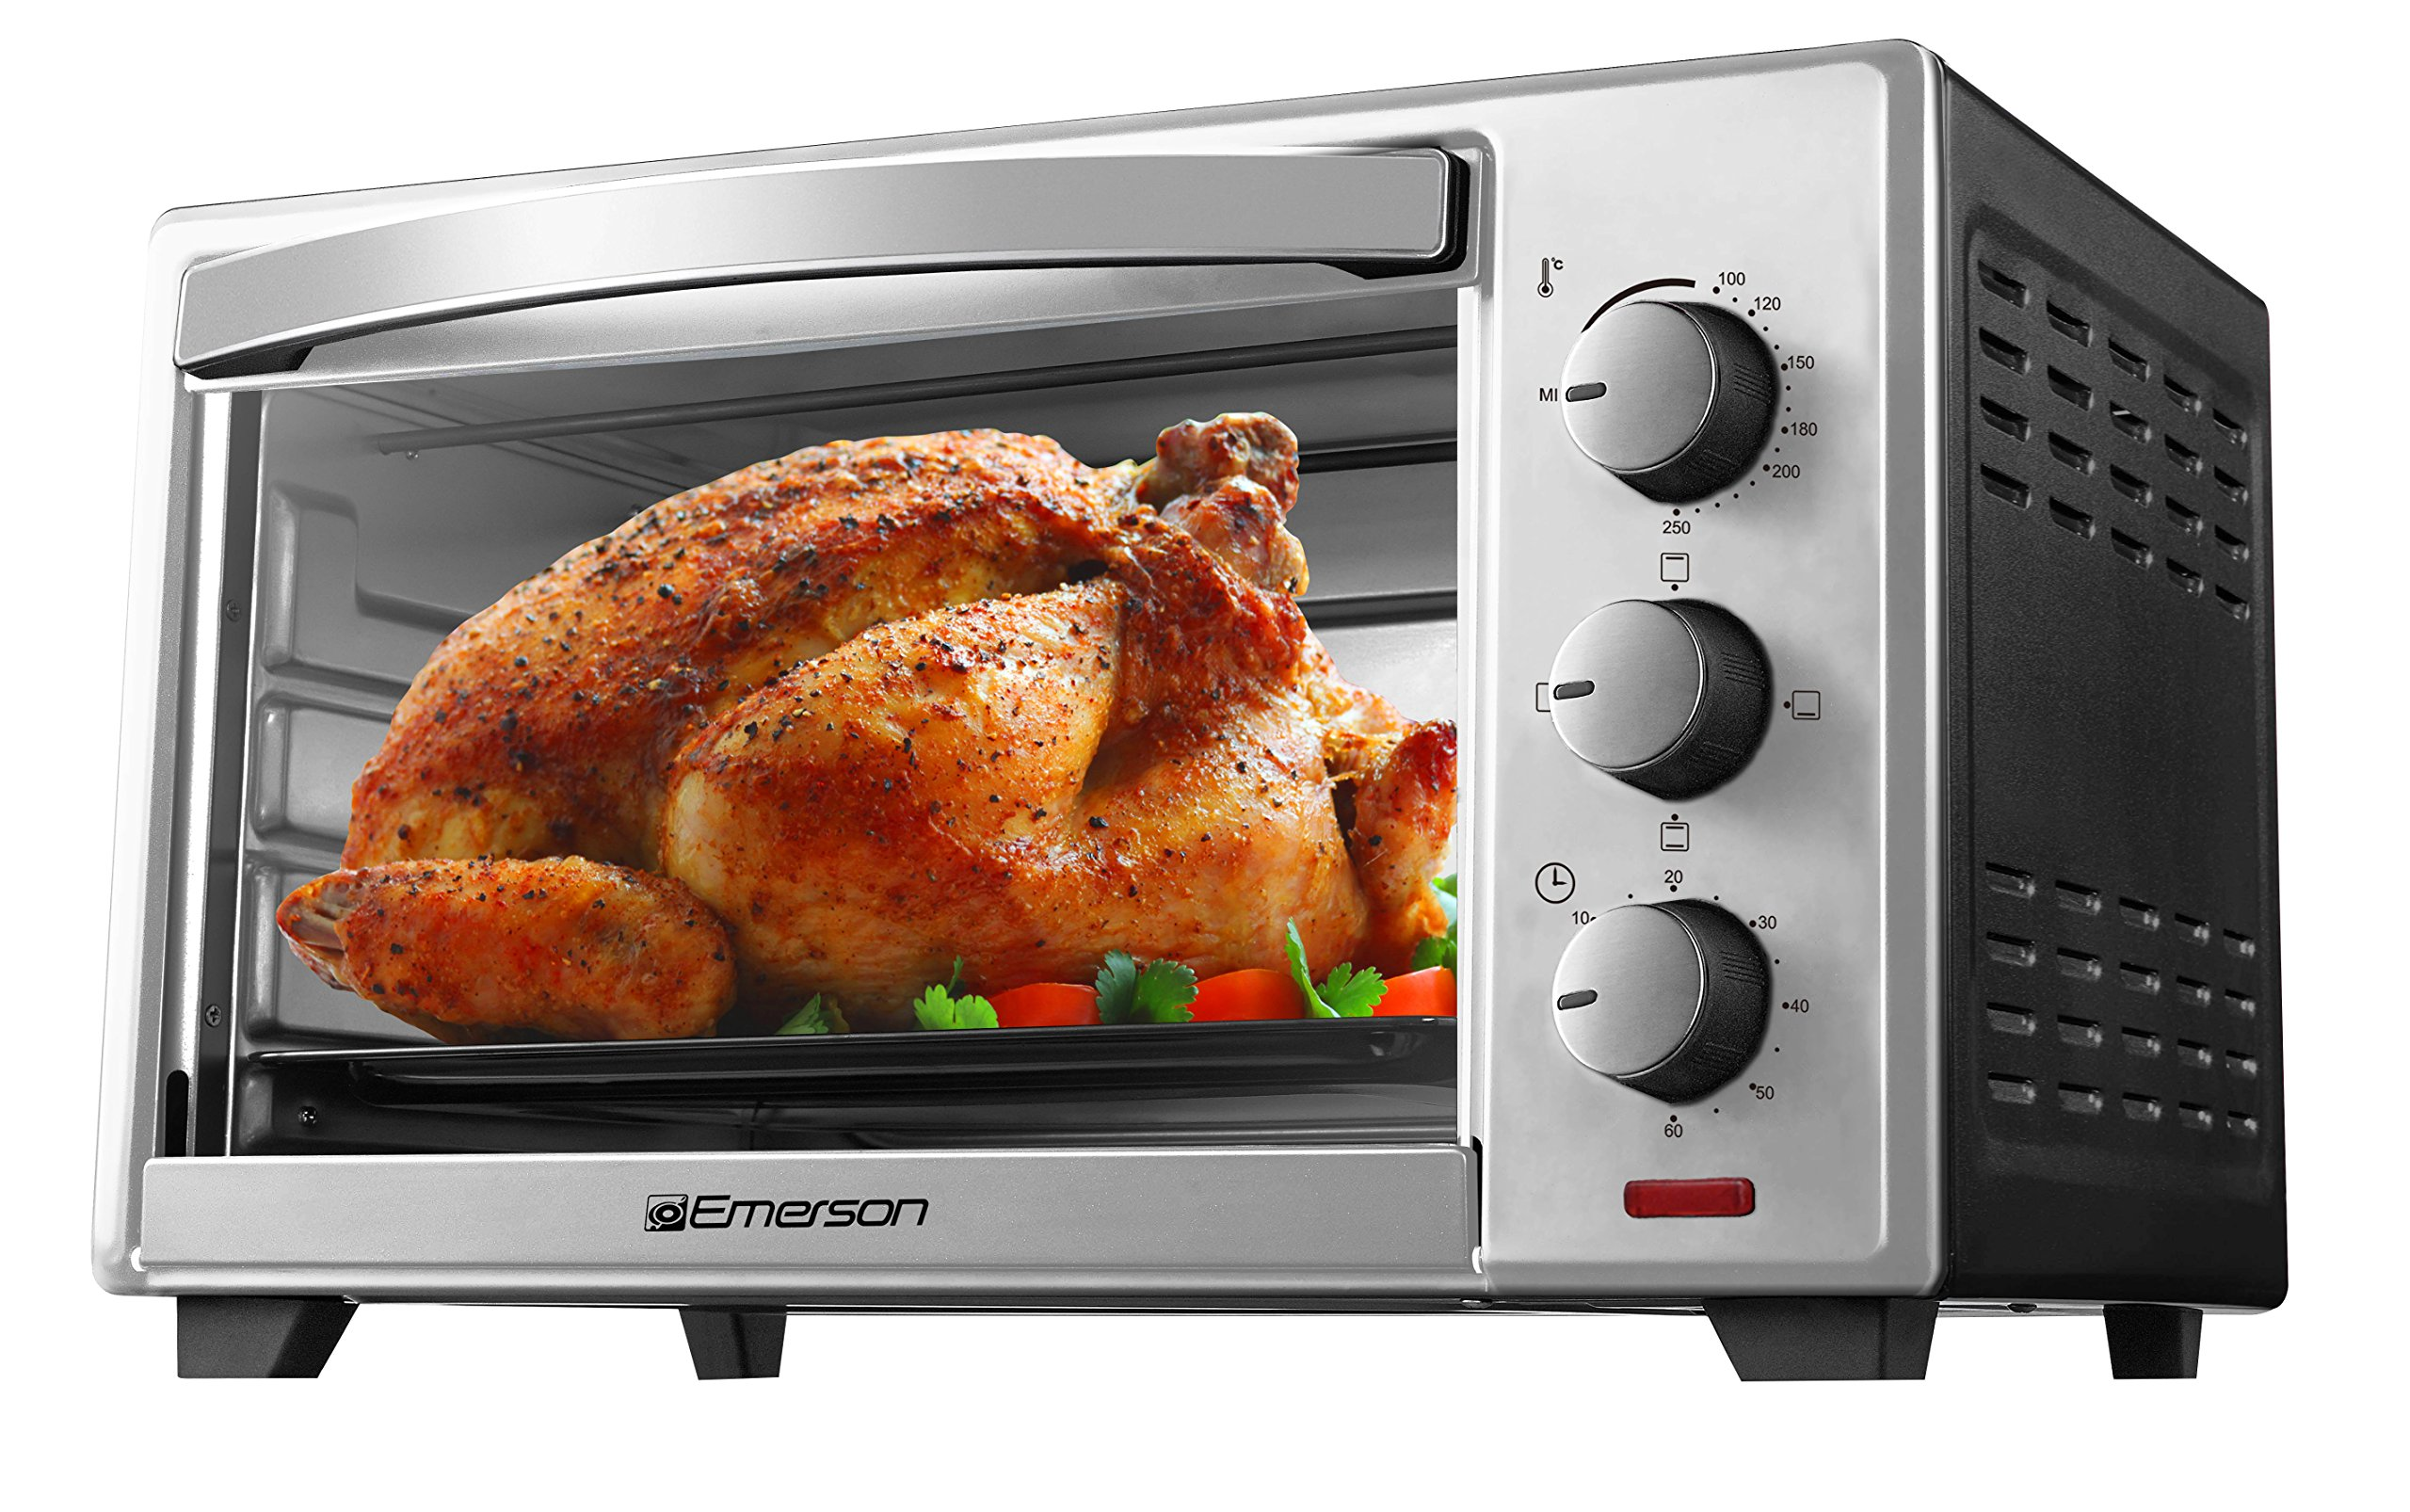 Emerson Stainless Steel 6 Slice, Convection and Rotisserie Countertop Toaster Oven, ER101003 by Emerson Radio